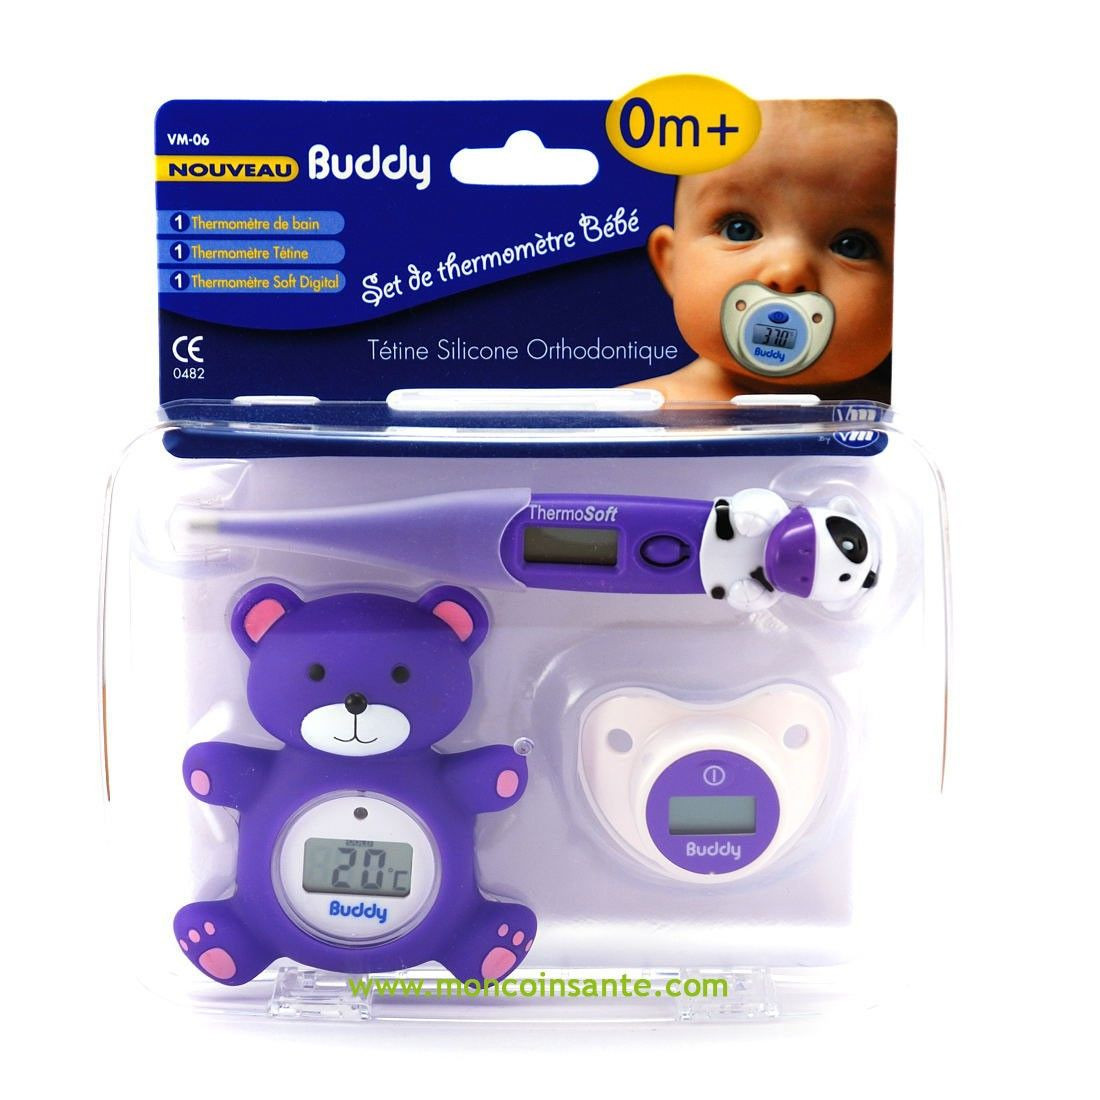 Coffret thermom tres buddy visiomed avis for Thermometre chambre bebe